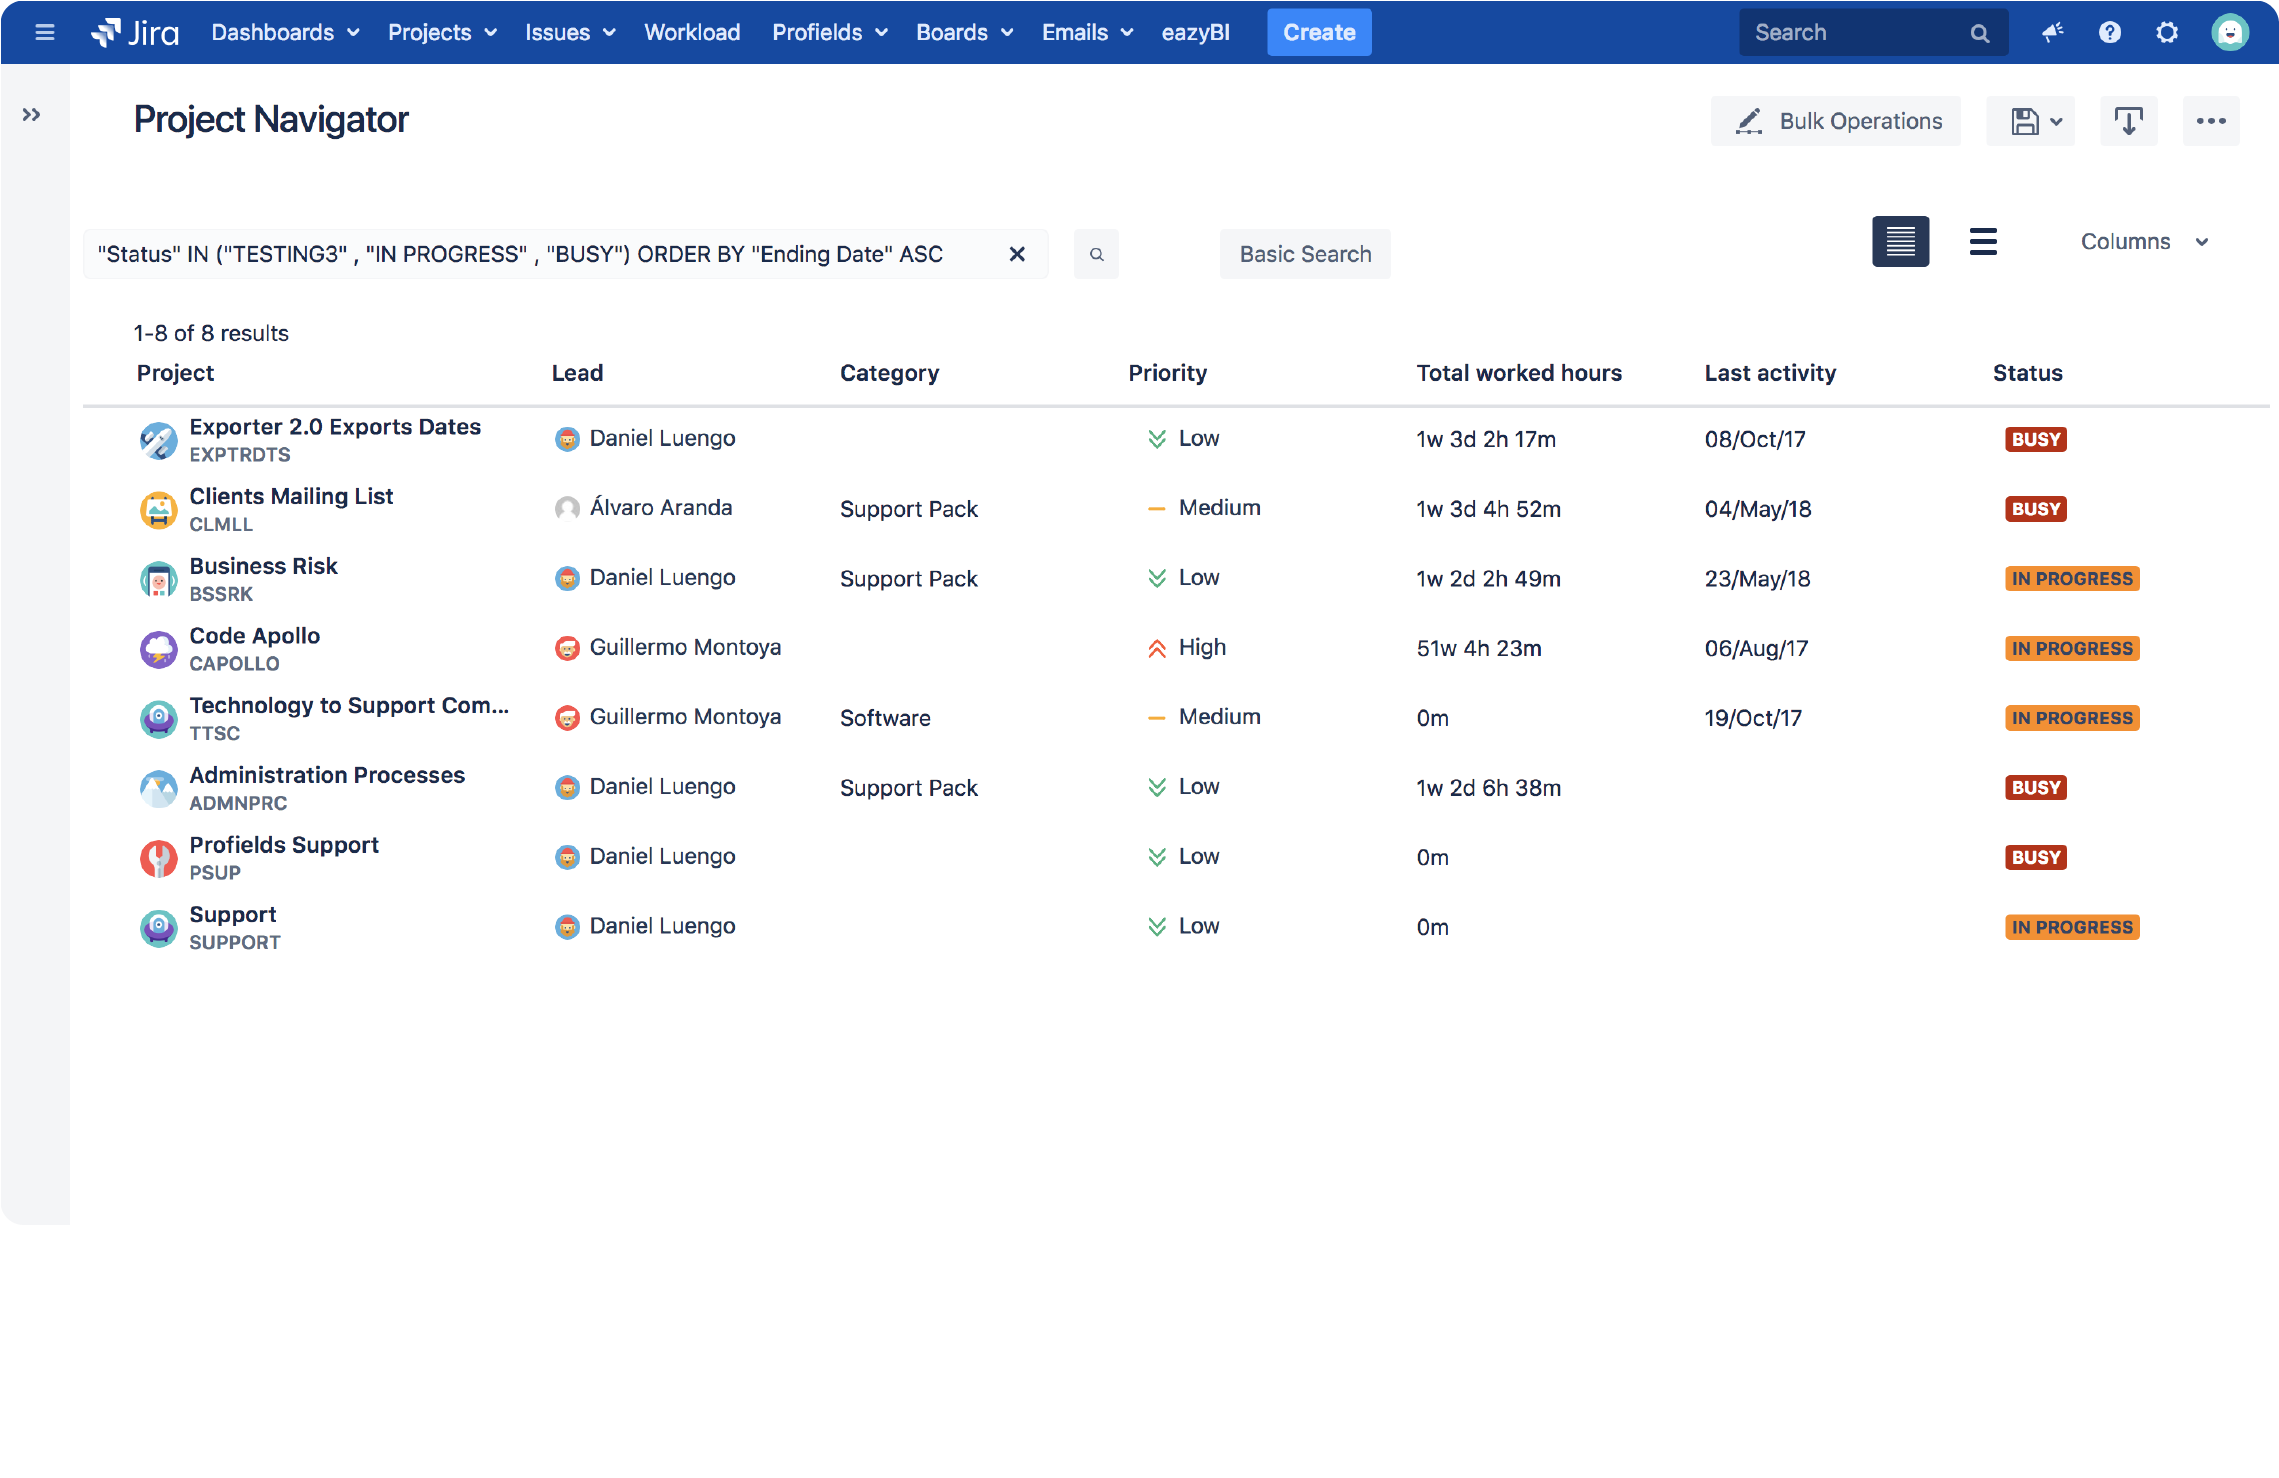 Profields for Jira | The same as the Jira issue navigator but for projects